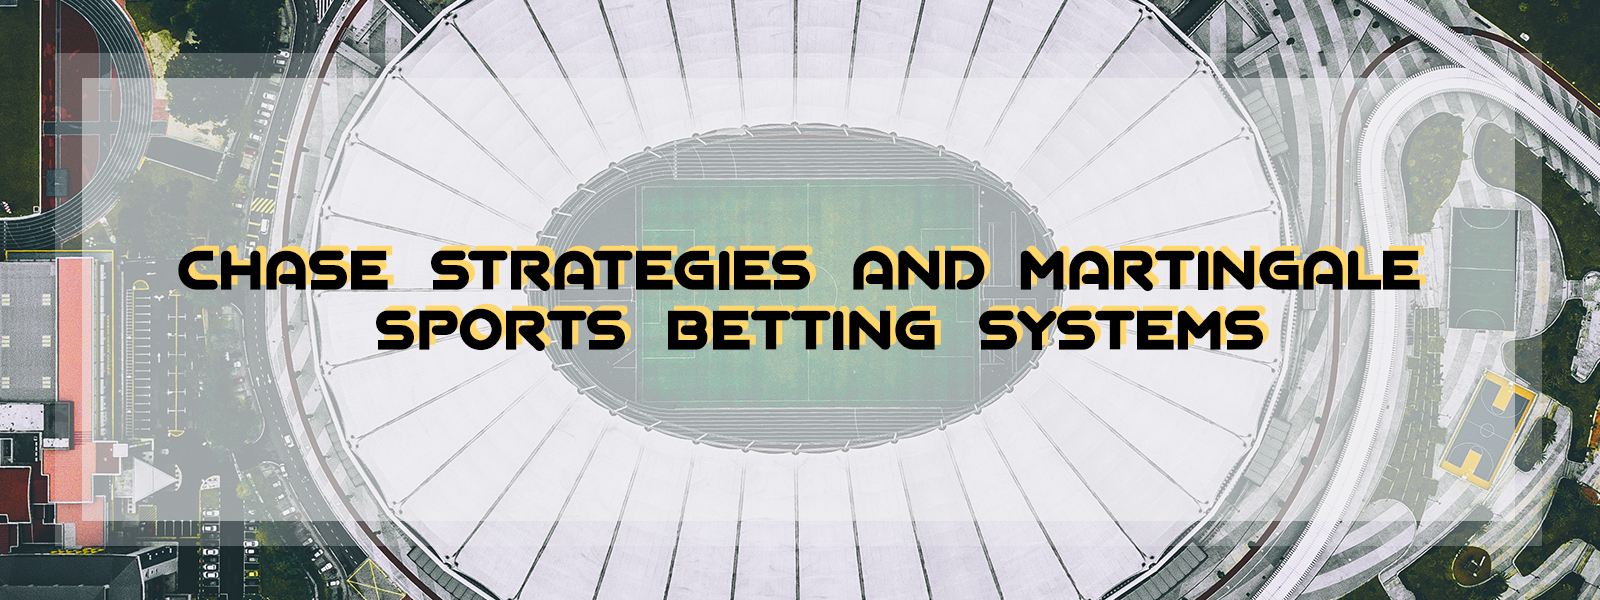 Chase Strategies And Martingale Sports Betting Systems